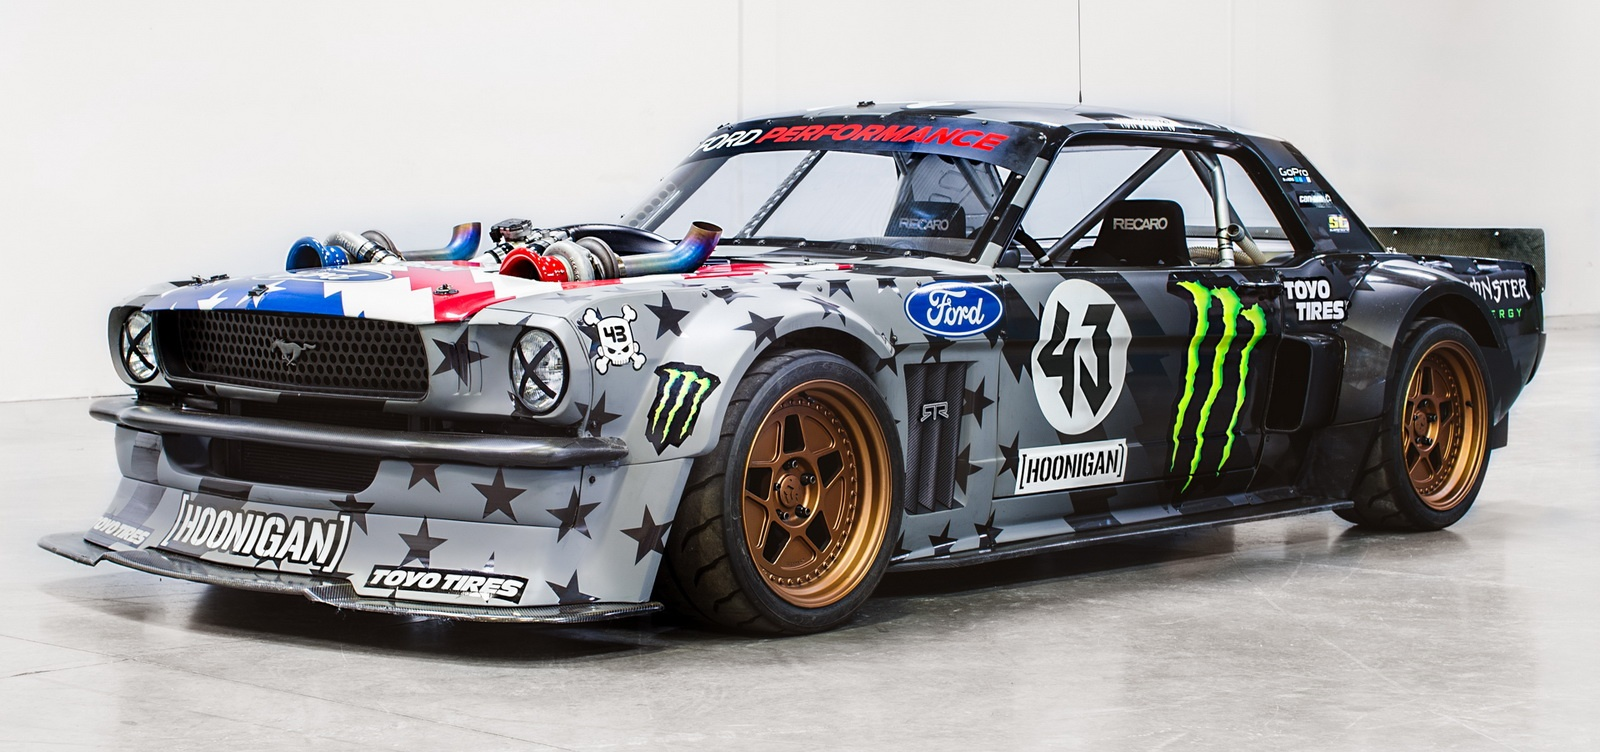 rtr cars with Ken Blocks Hoonicorn V2 1965 Ford Mustang 1400 Hp Twin Turbo Methanol on Cbs Verruecktes Auto Tuning Bildergalerie 6302521 in addition Charcoal Rtr Wheels Kona Blue Without Rtr Package Stripes 502606 besides Access 125 besides Watch likewise Gixxer Sf.